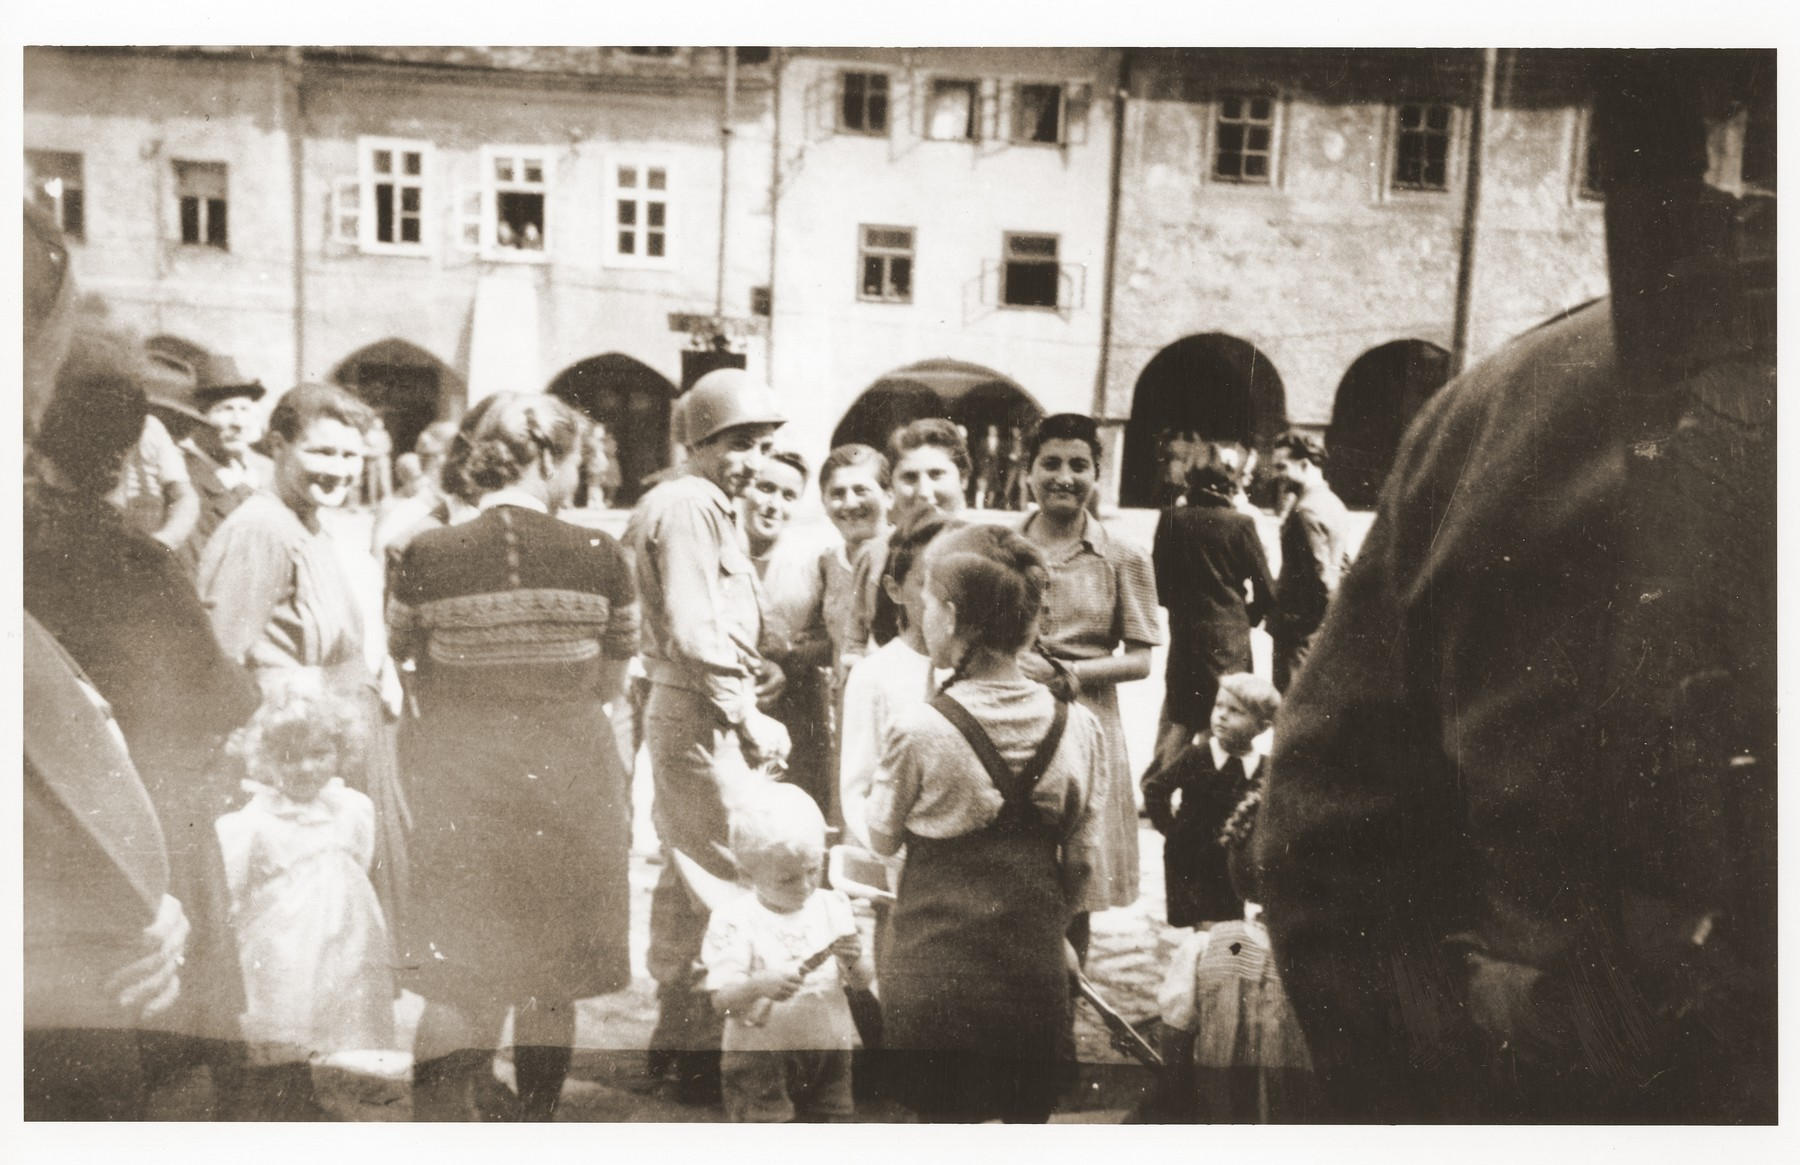 An American soldier, named Shapiro, and Jewish women, several of whom are from Lodz, attend an American soldiers' concert in Prachatice, near Volary.    The women are survivors of a 500 km. death march that ended in Volary and are recuperating in Prachatice.